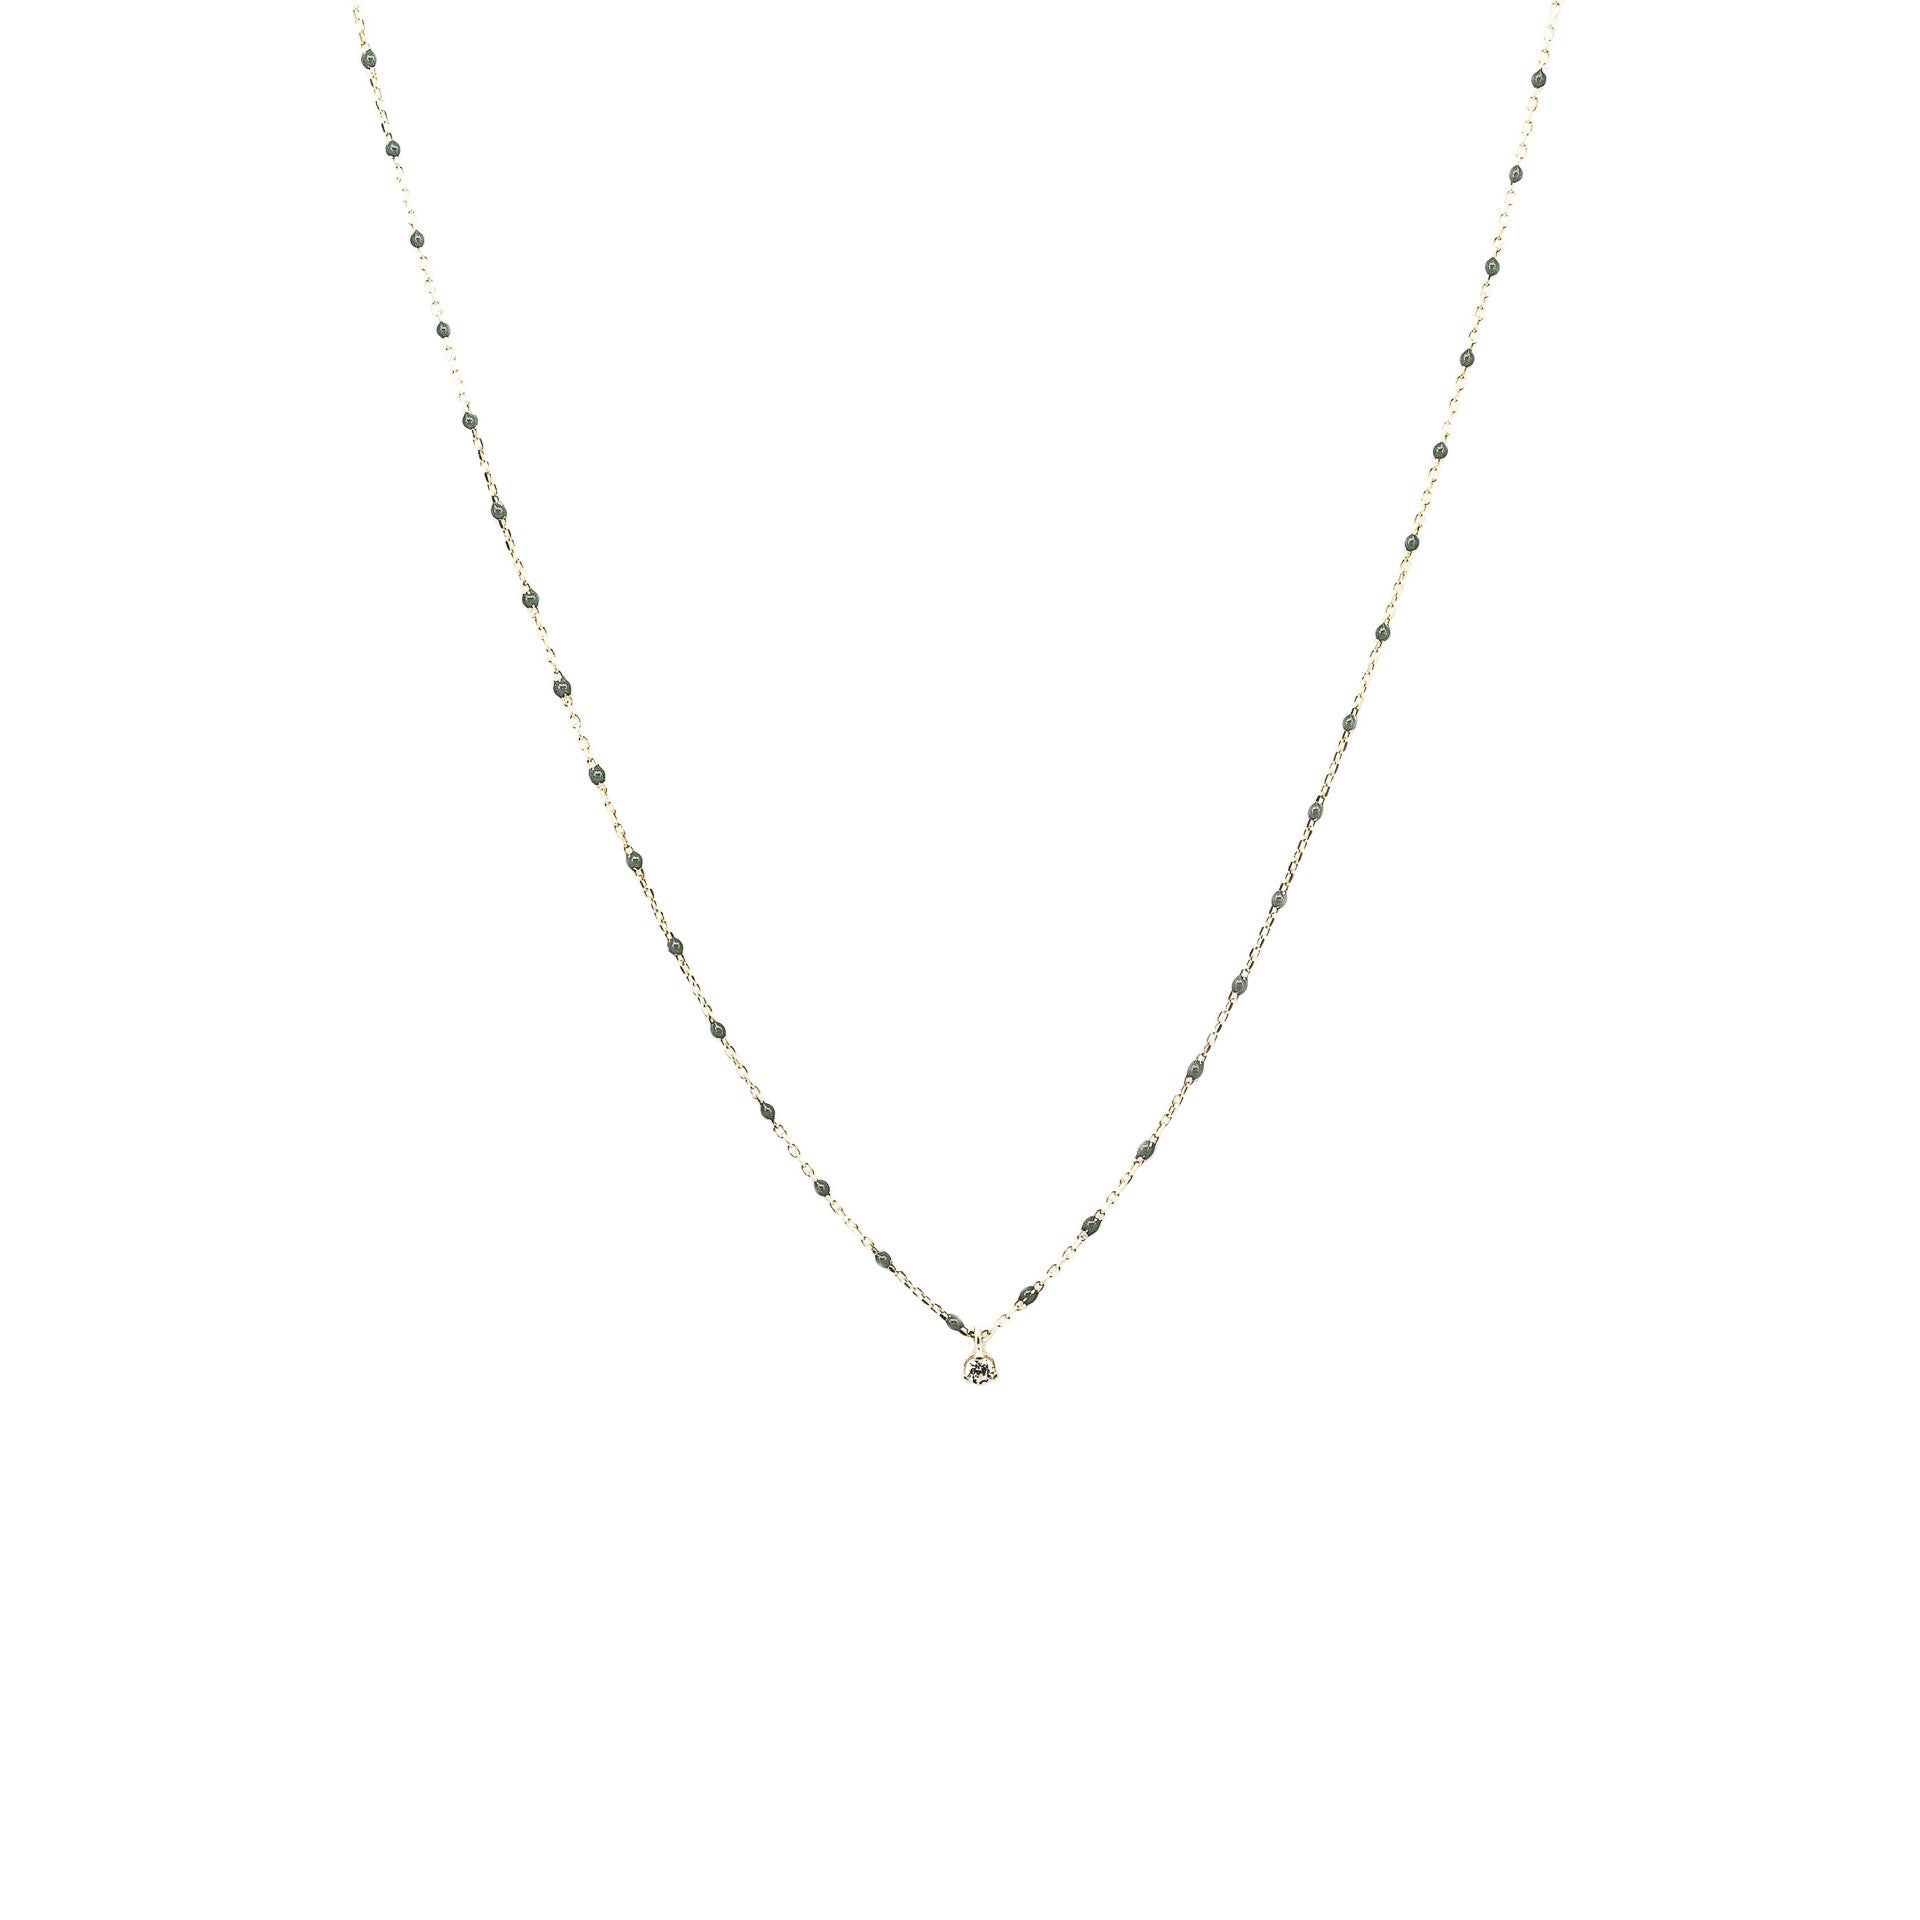 STERLING SILVER ENAMEL BEADED NECKLACE WITH CZ (GRAY)